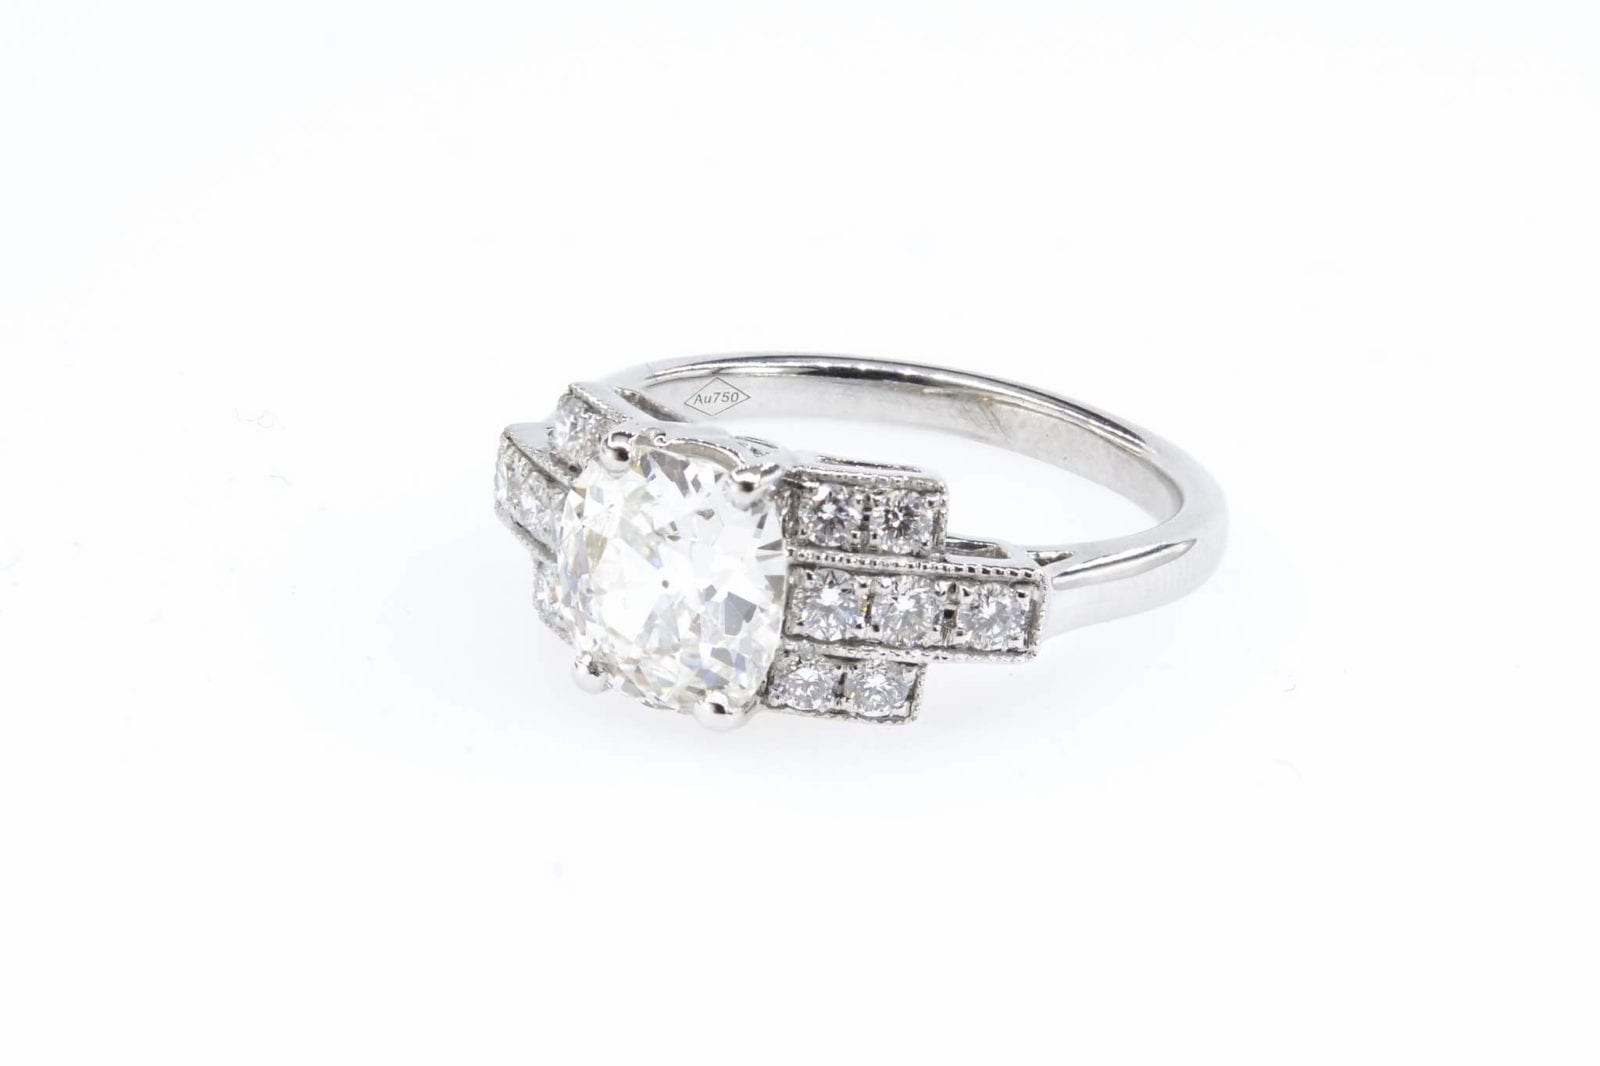 Bague diamant de 1,27 carats en or blanc 18k